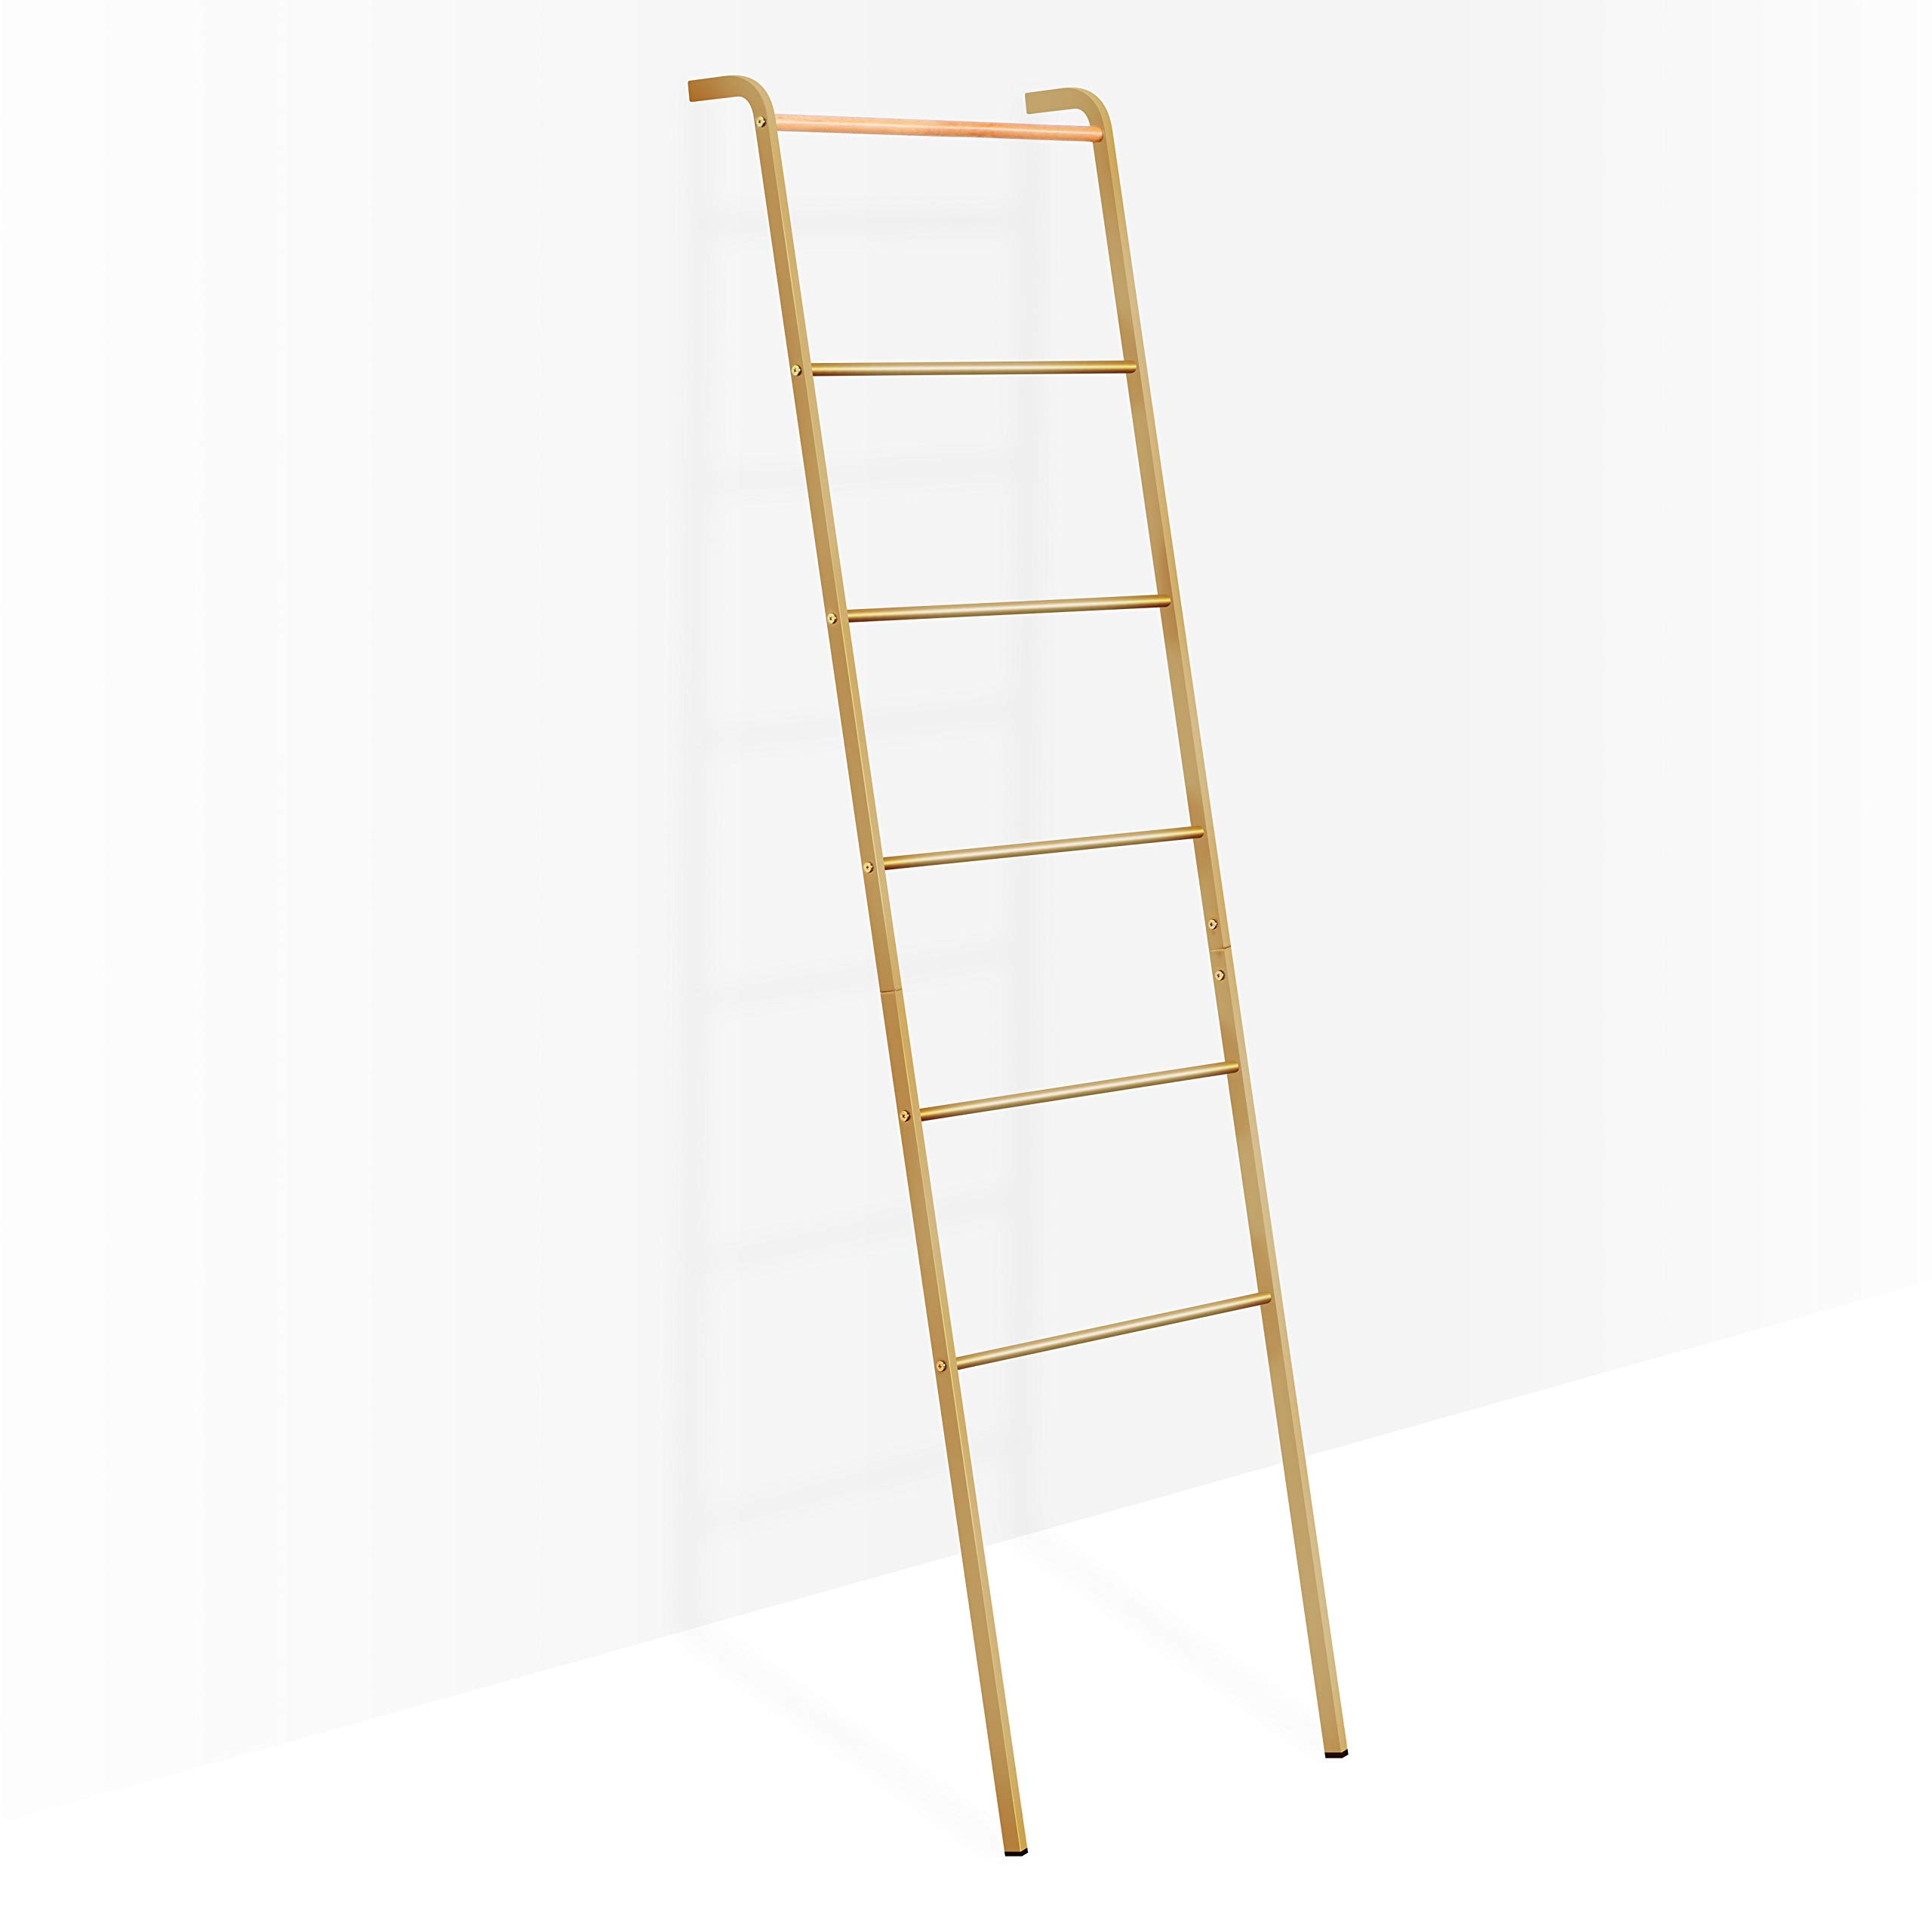 CDM product Brightech - Mila Decorative Ladder - Sturdy Metal and Wood Accessory for Indoor Outdoor Garden Porch Patio - Antique Brass big image